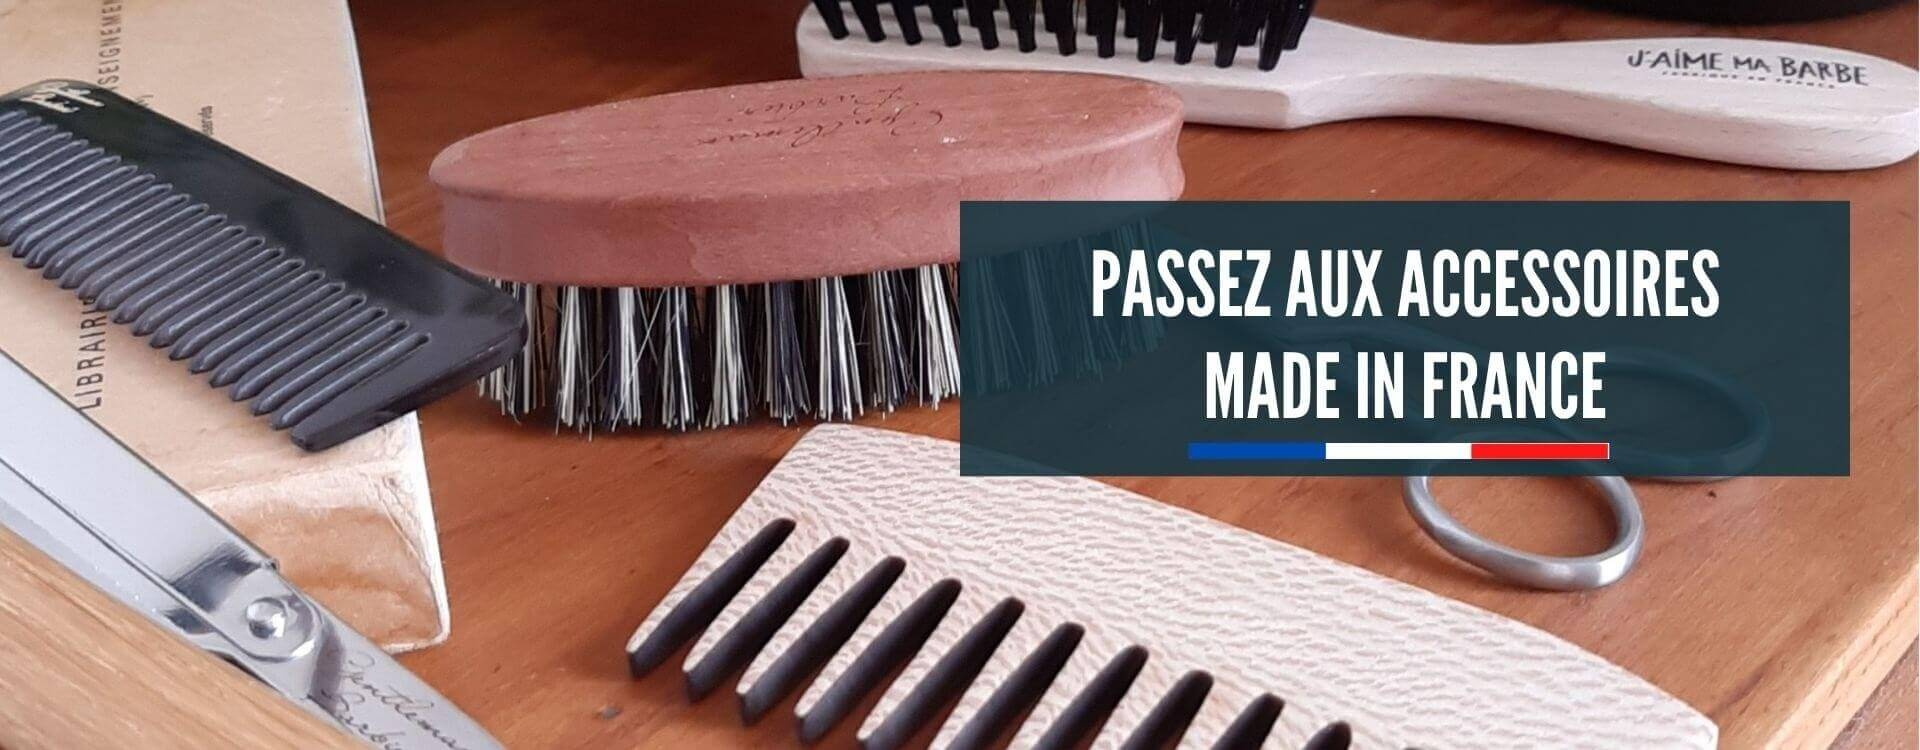 Accessoires Made in France